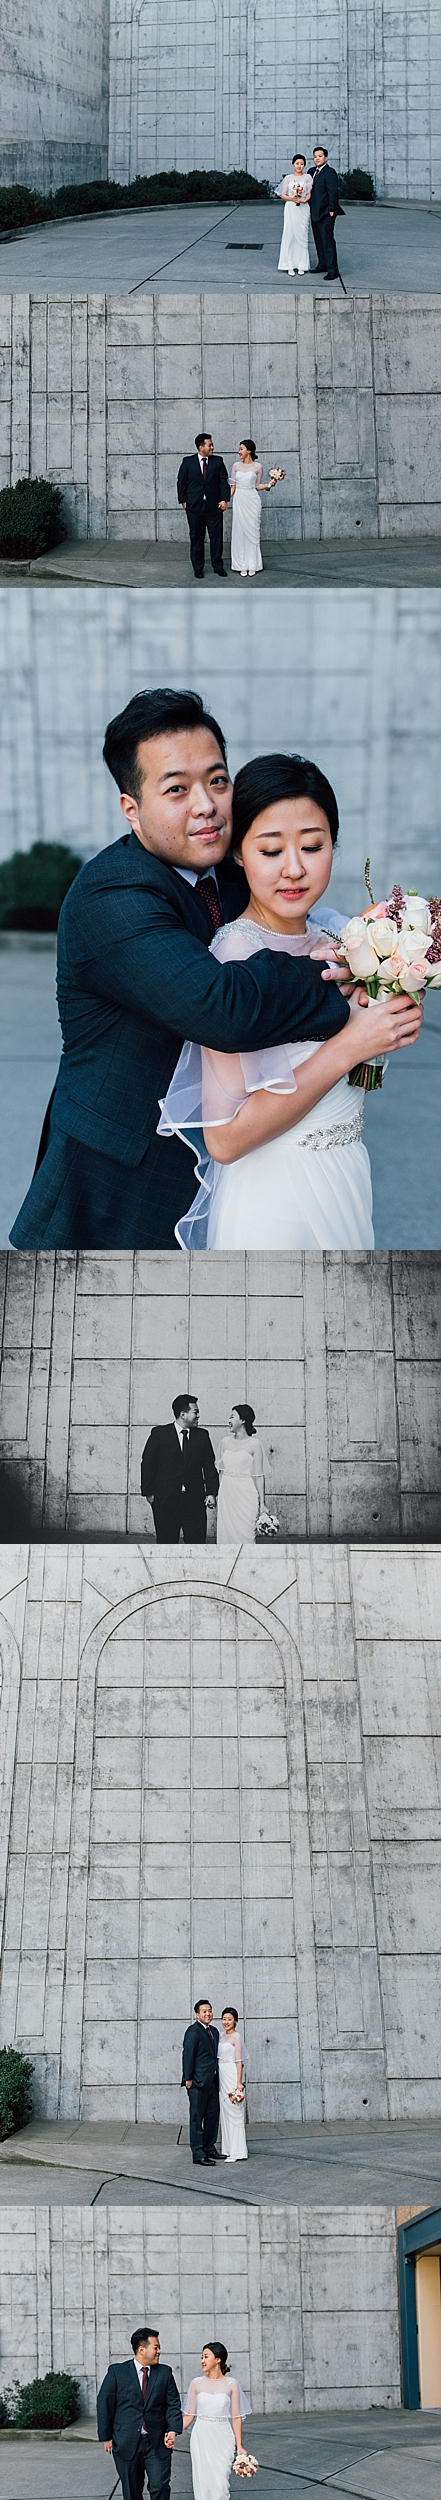 Seattle Courthouse Wedding Photographer PNW elopement Photography - Annie & Alan - Ashley Vos Photography-6.jpg